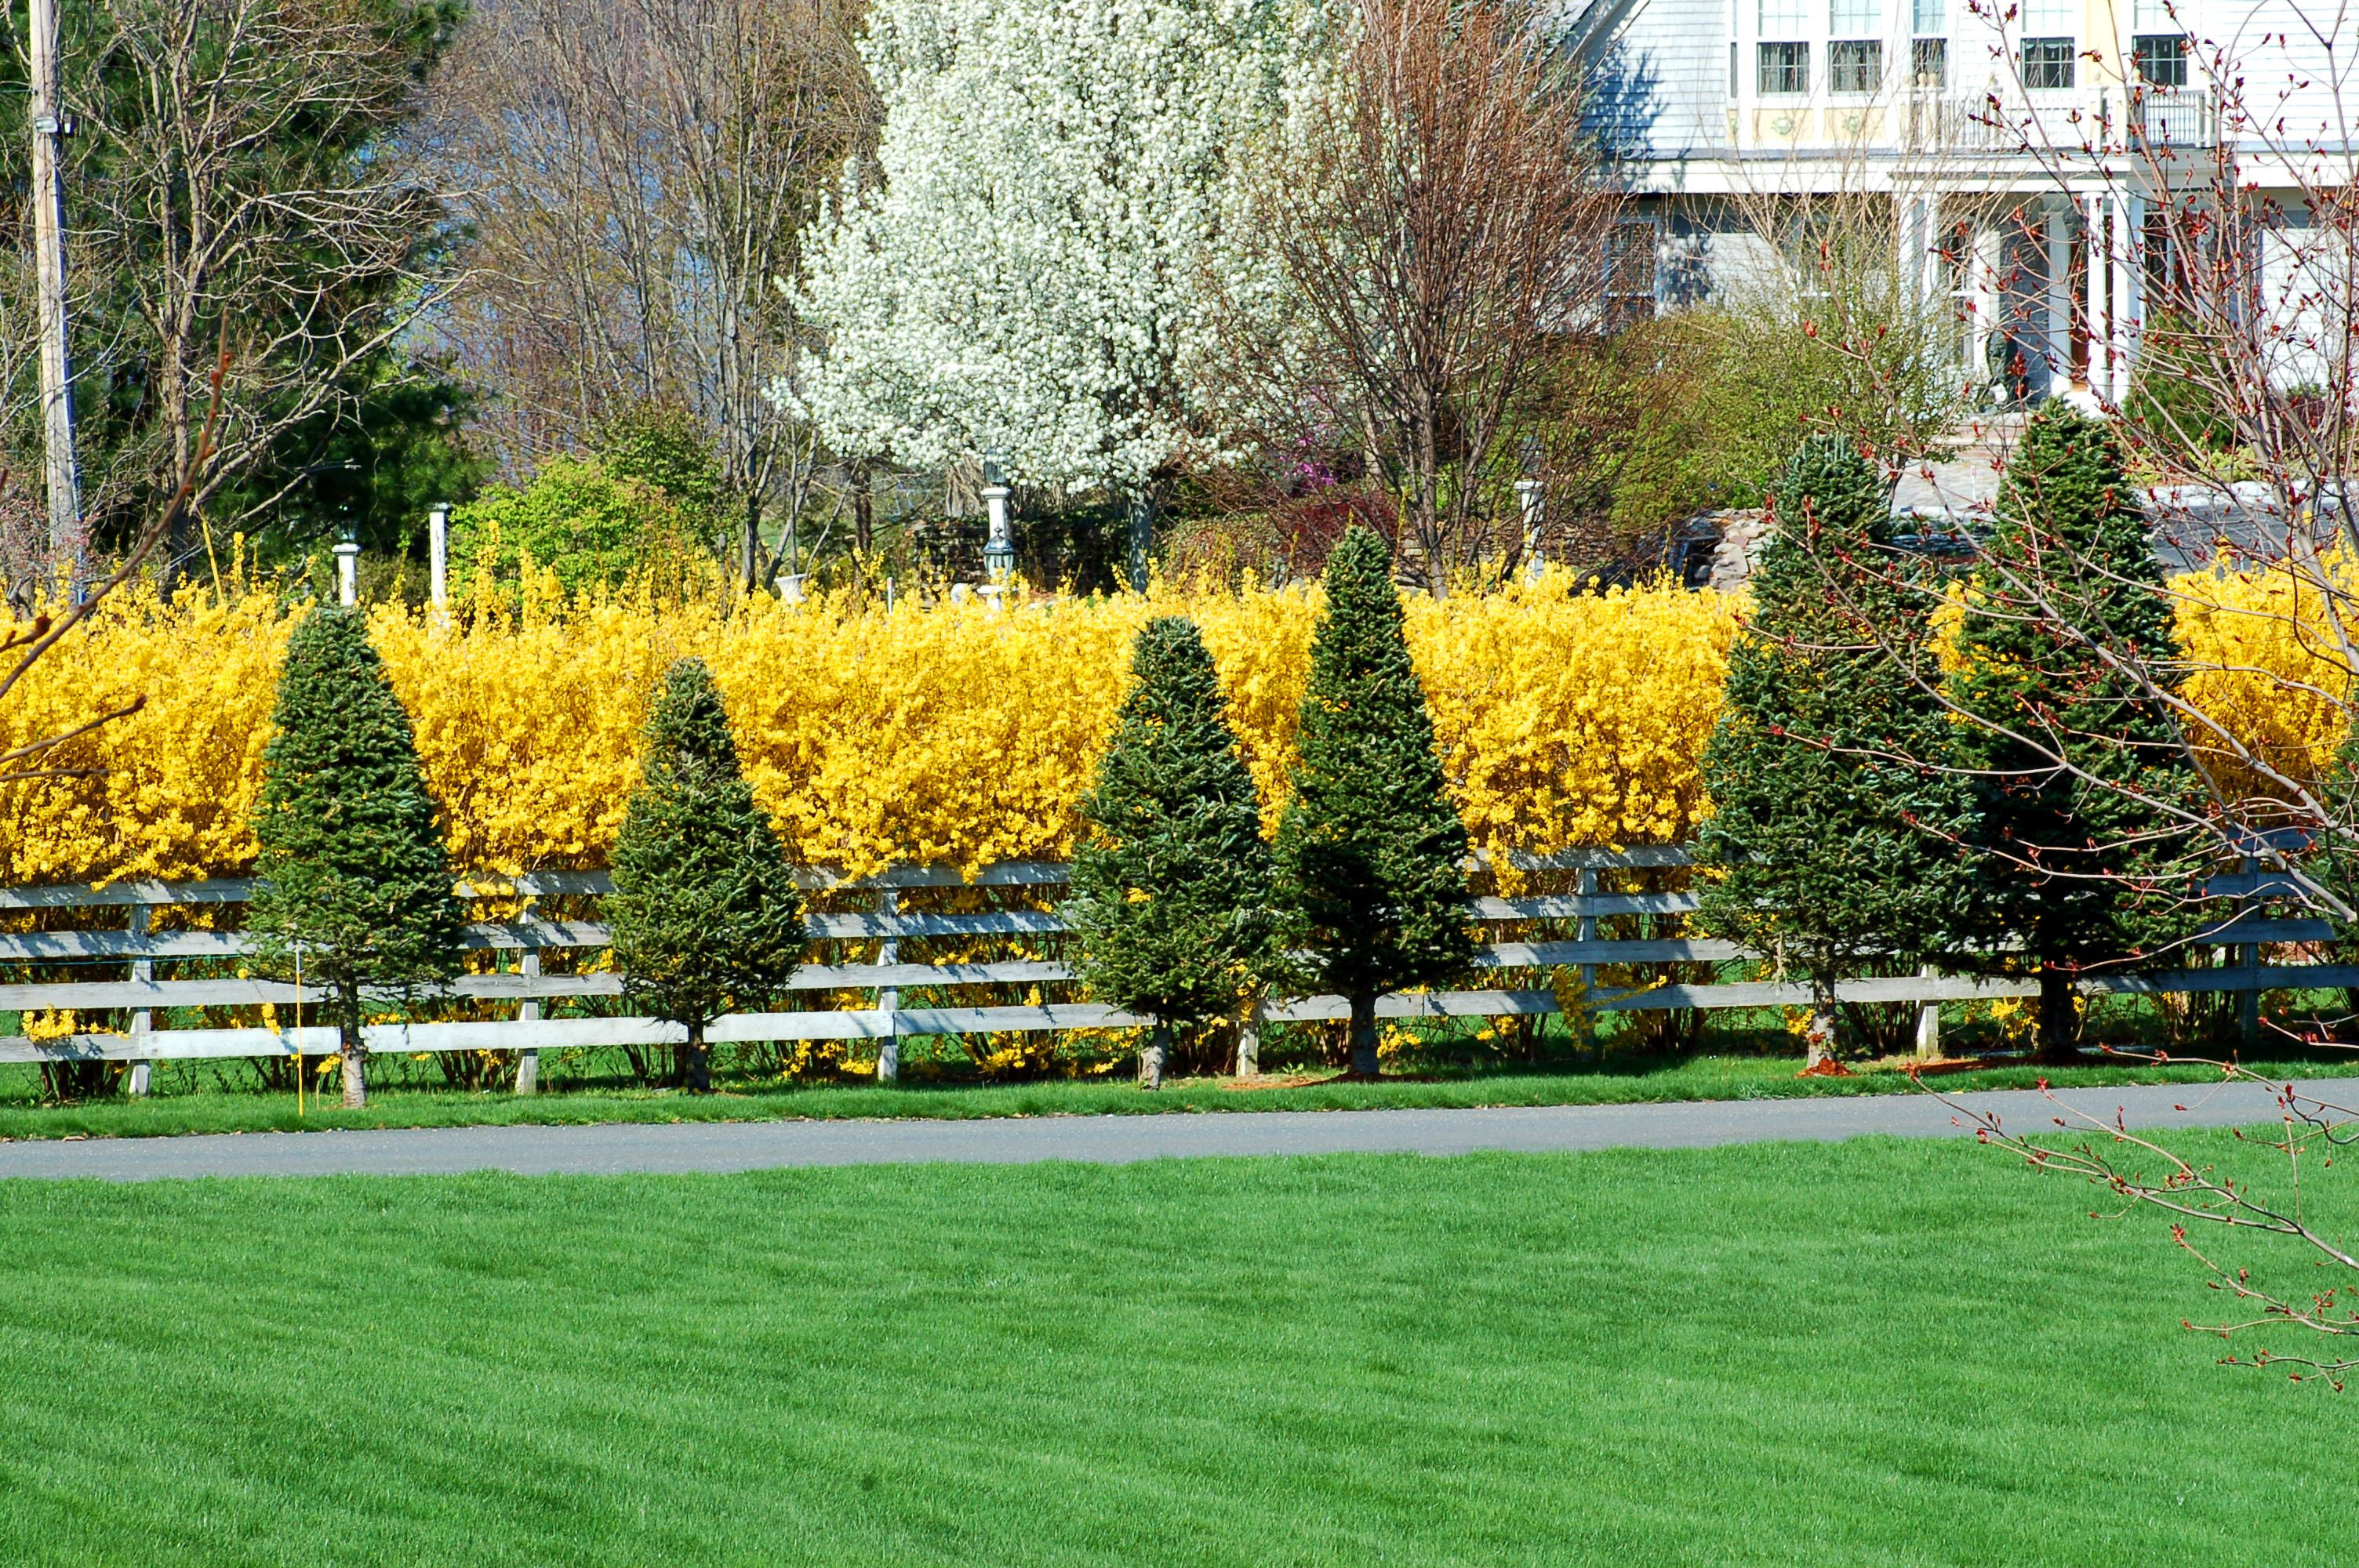 The Best Shrubs for Making Hedges